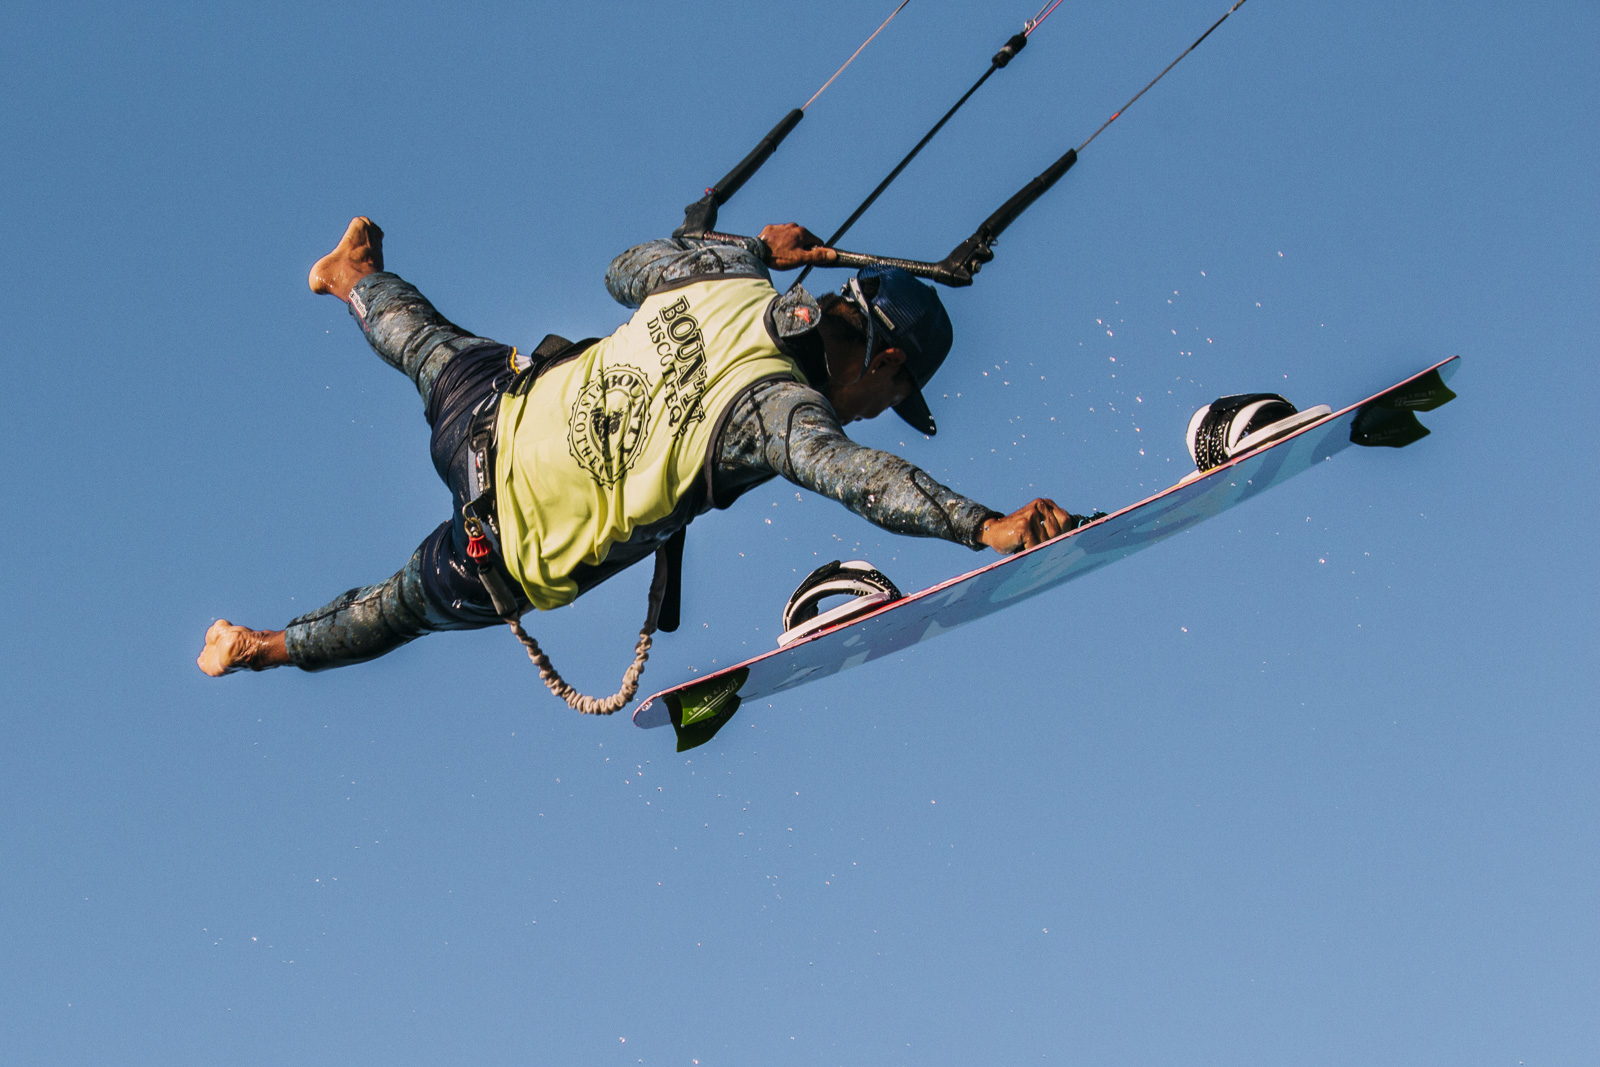 Kite Surfer Freestyle